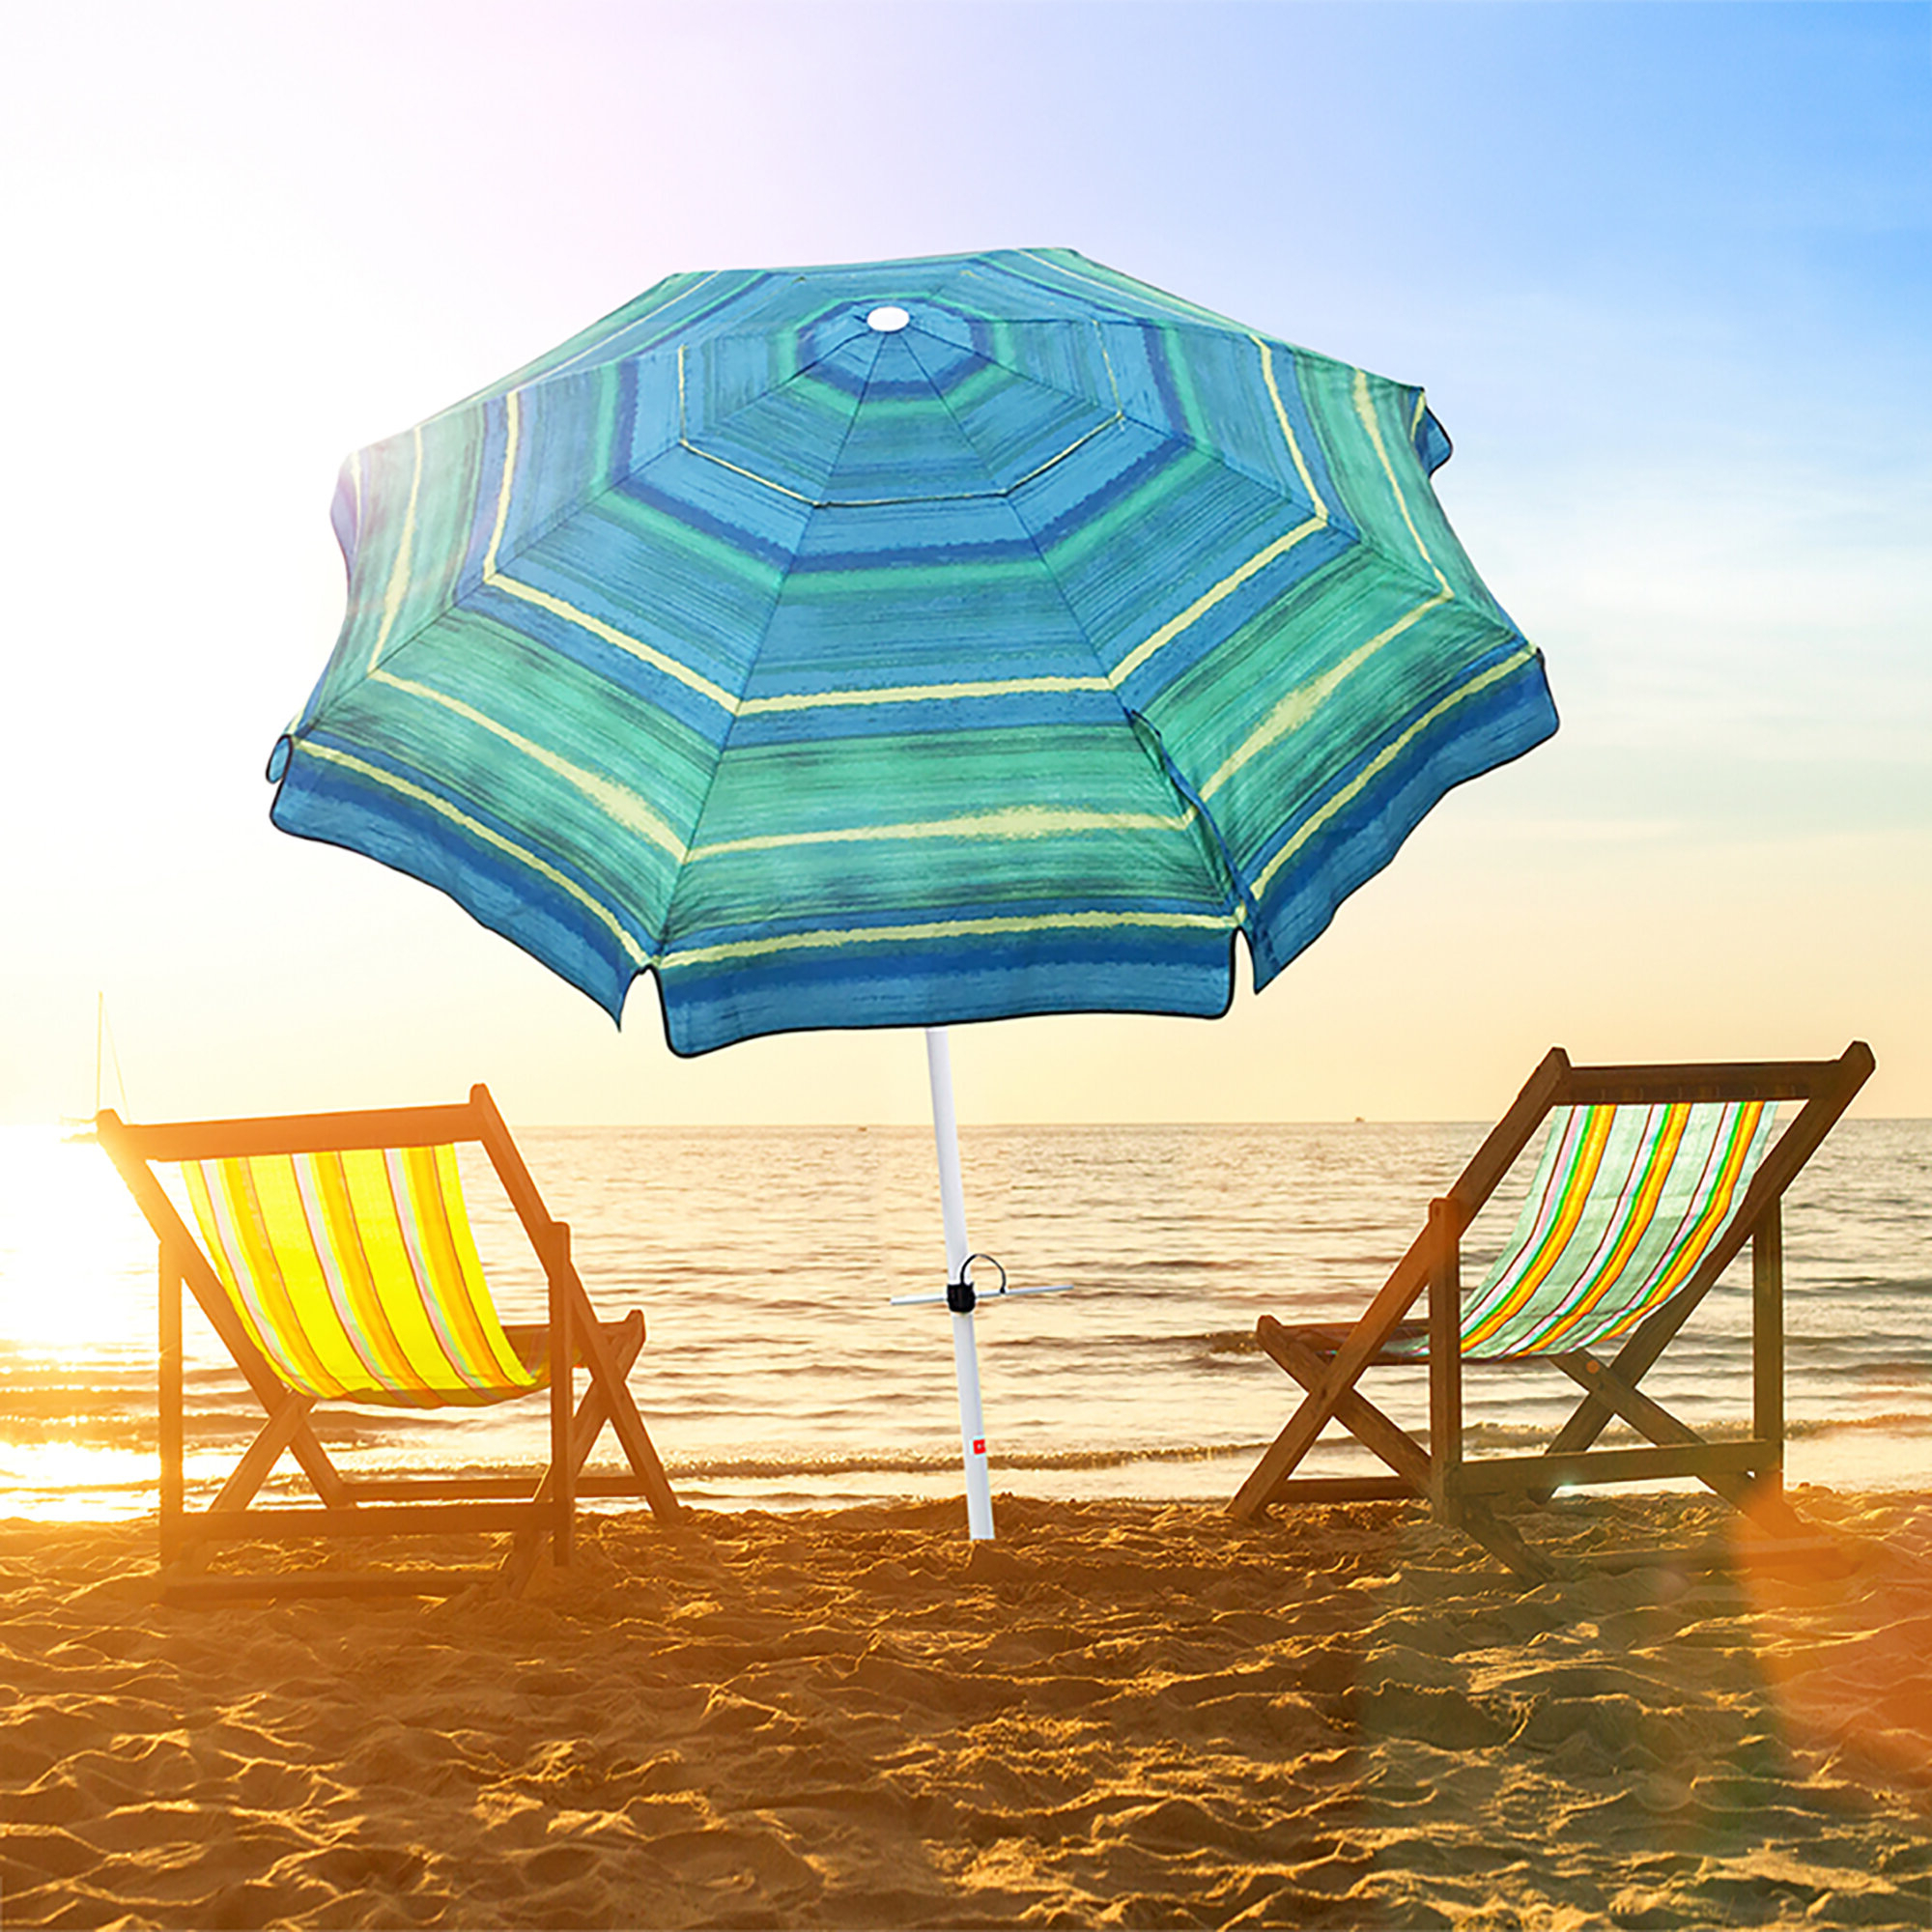 Well Liked Margaritaville Green And Blue Striped Beach With Built In Sand Anchor Umbrellas Pertaining To Newington 7' Beach Umbrella (View 19 of 20)